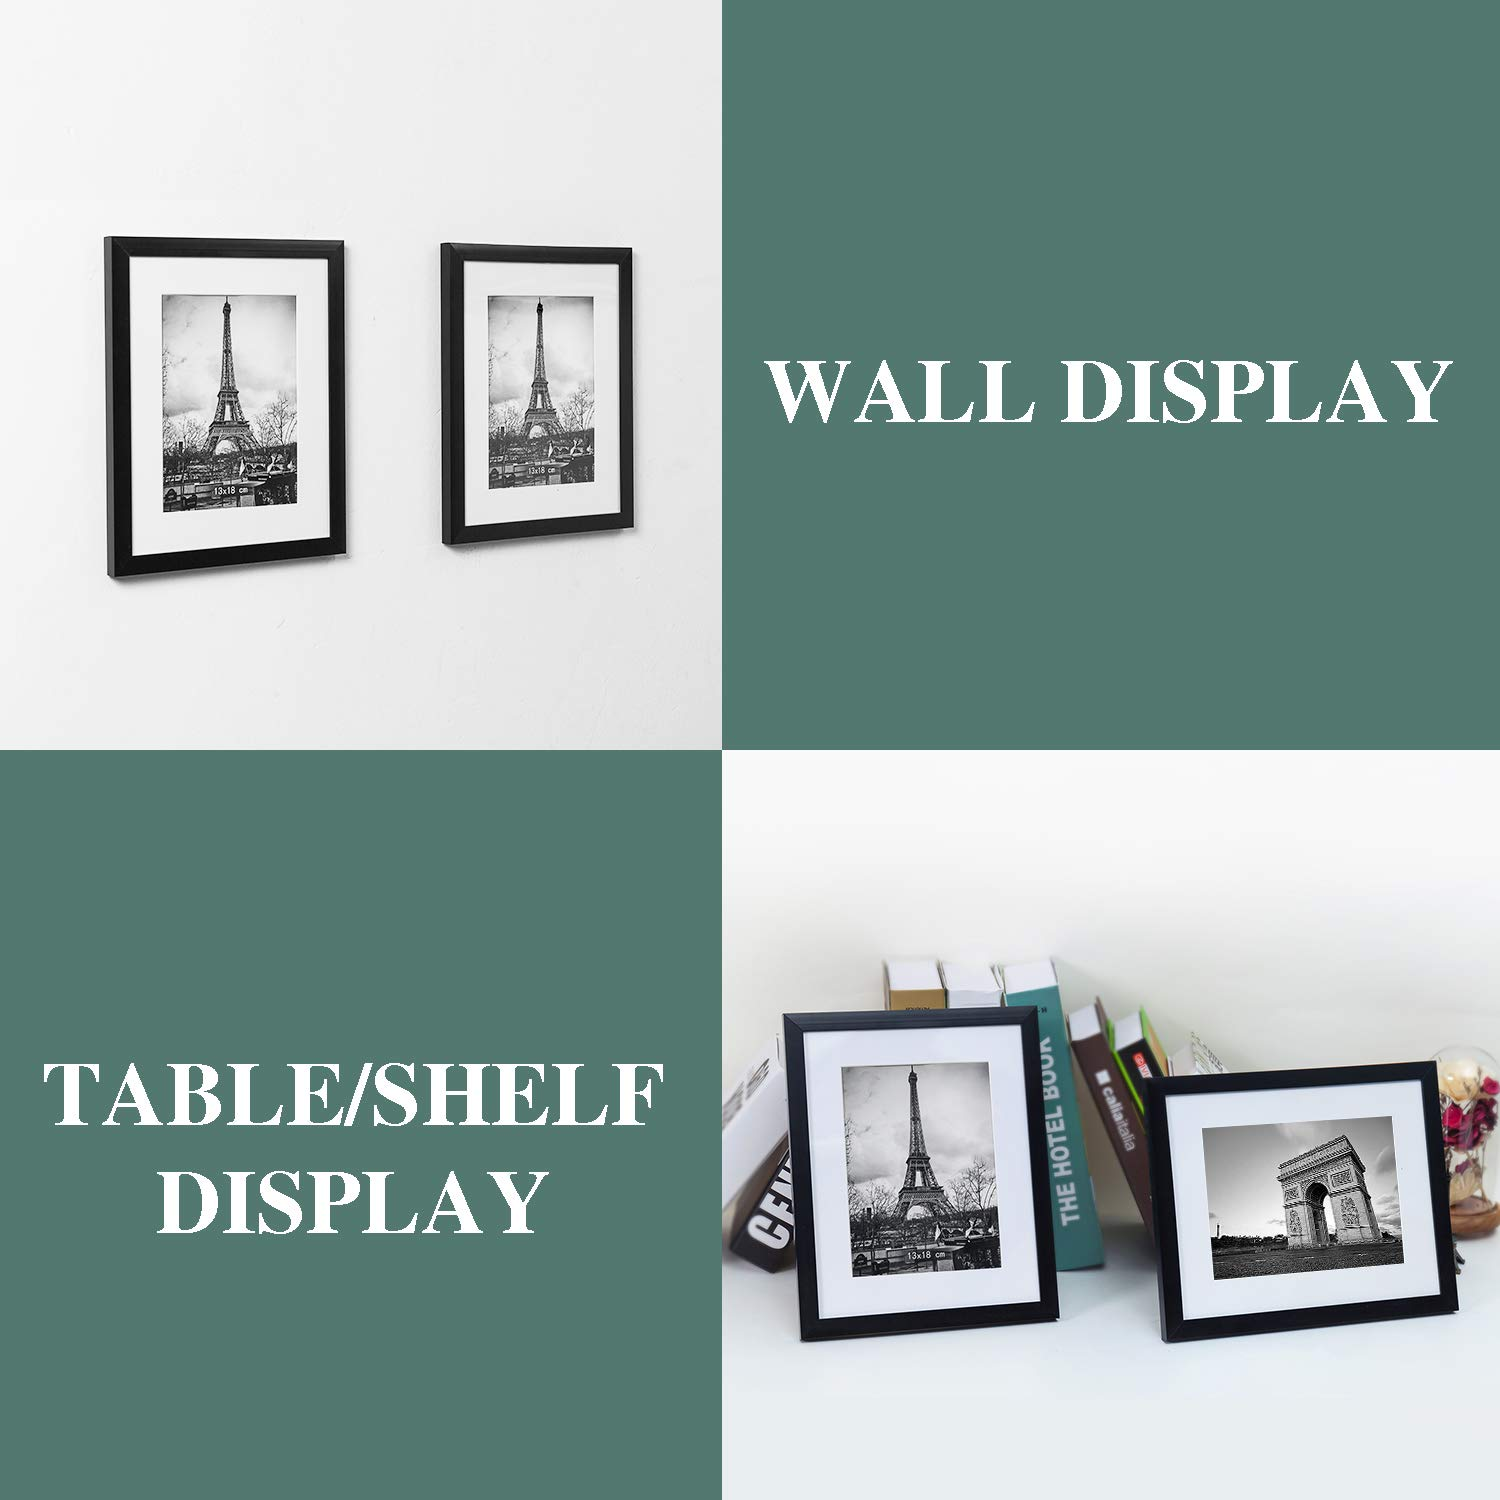 upsimples 8x10 Picture Frame with Mat Set of 10,Black Picture Frames for Wall or Tabletop Display,Gallery Wall Frame Collage by upsimples (Image #2)